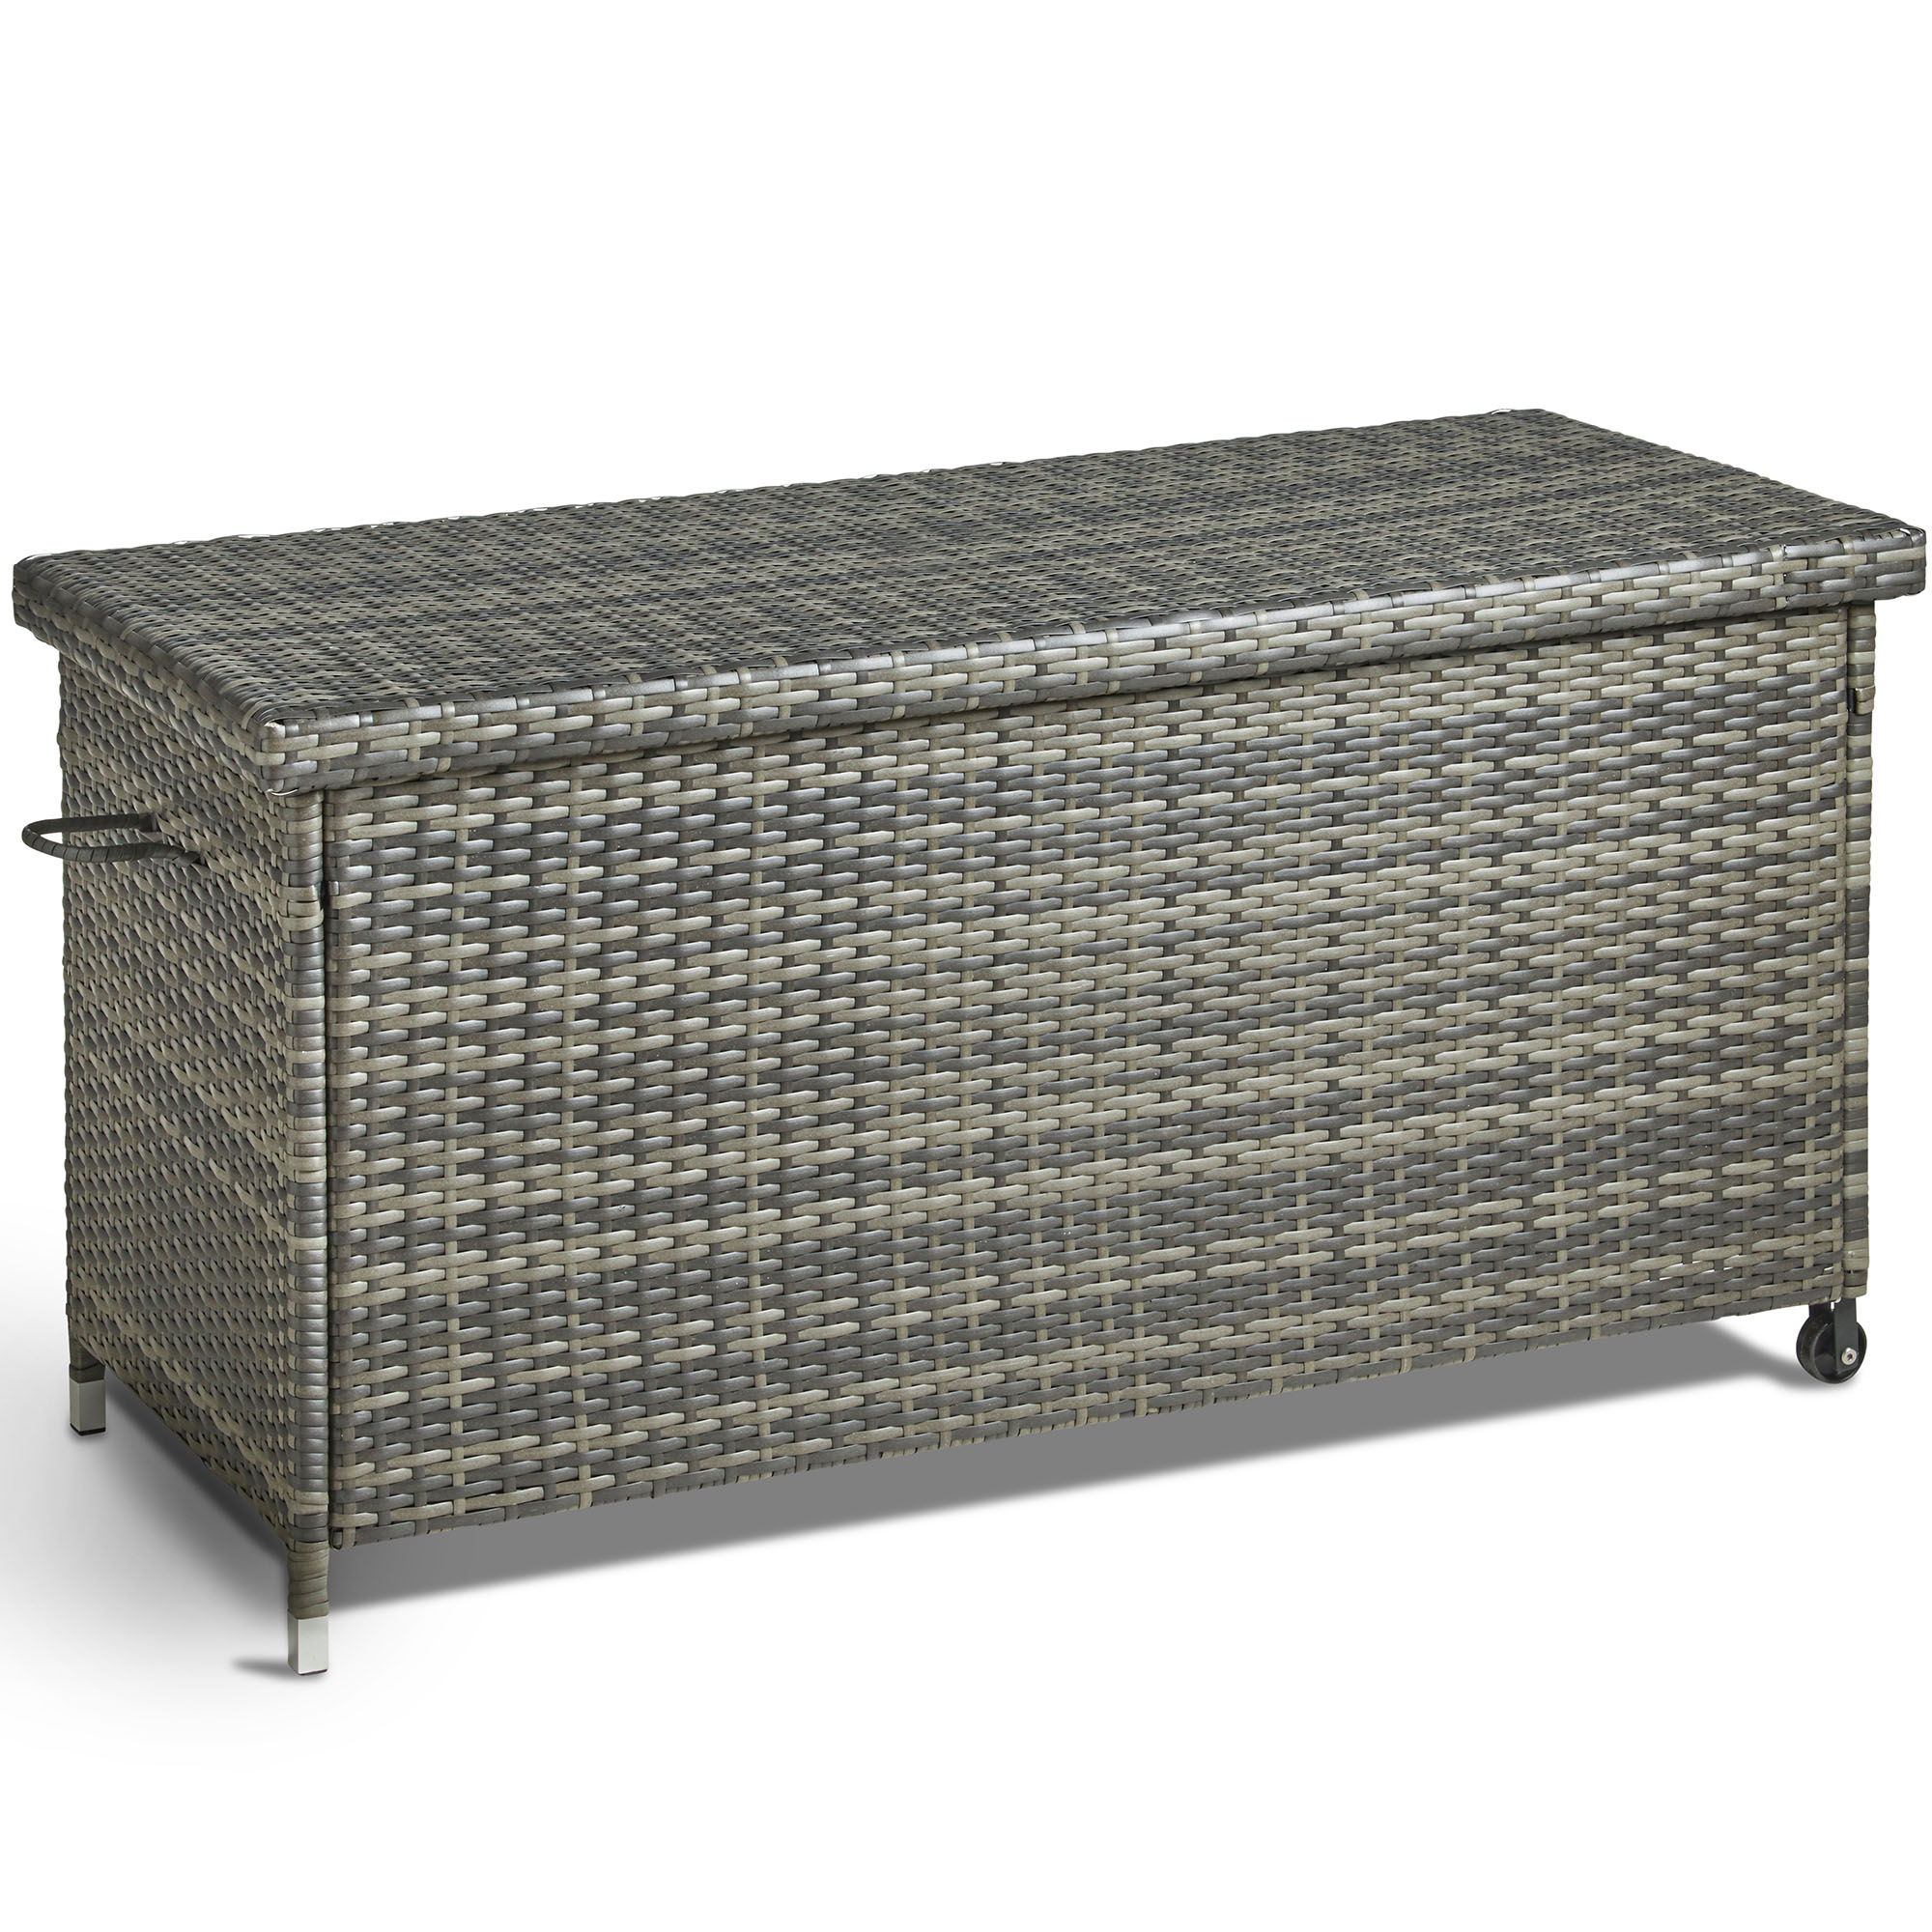 Sentinel Vonhaus Cushion Storage Box Pe Rattan Weather Resistant And Easy Open Ottoman For Outdoors